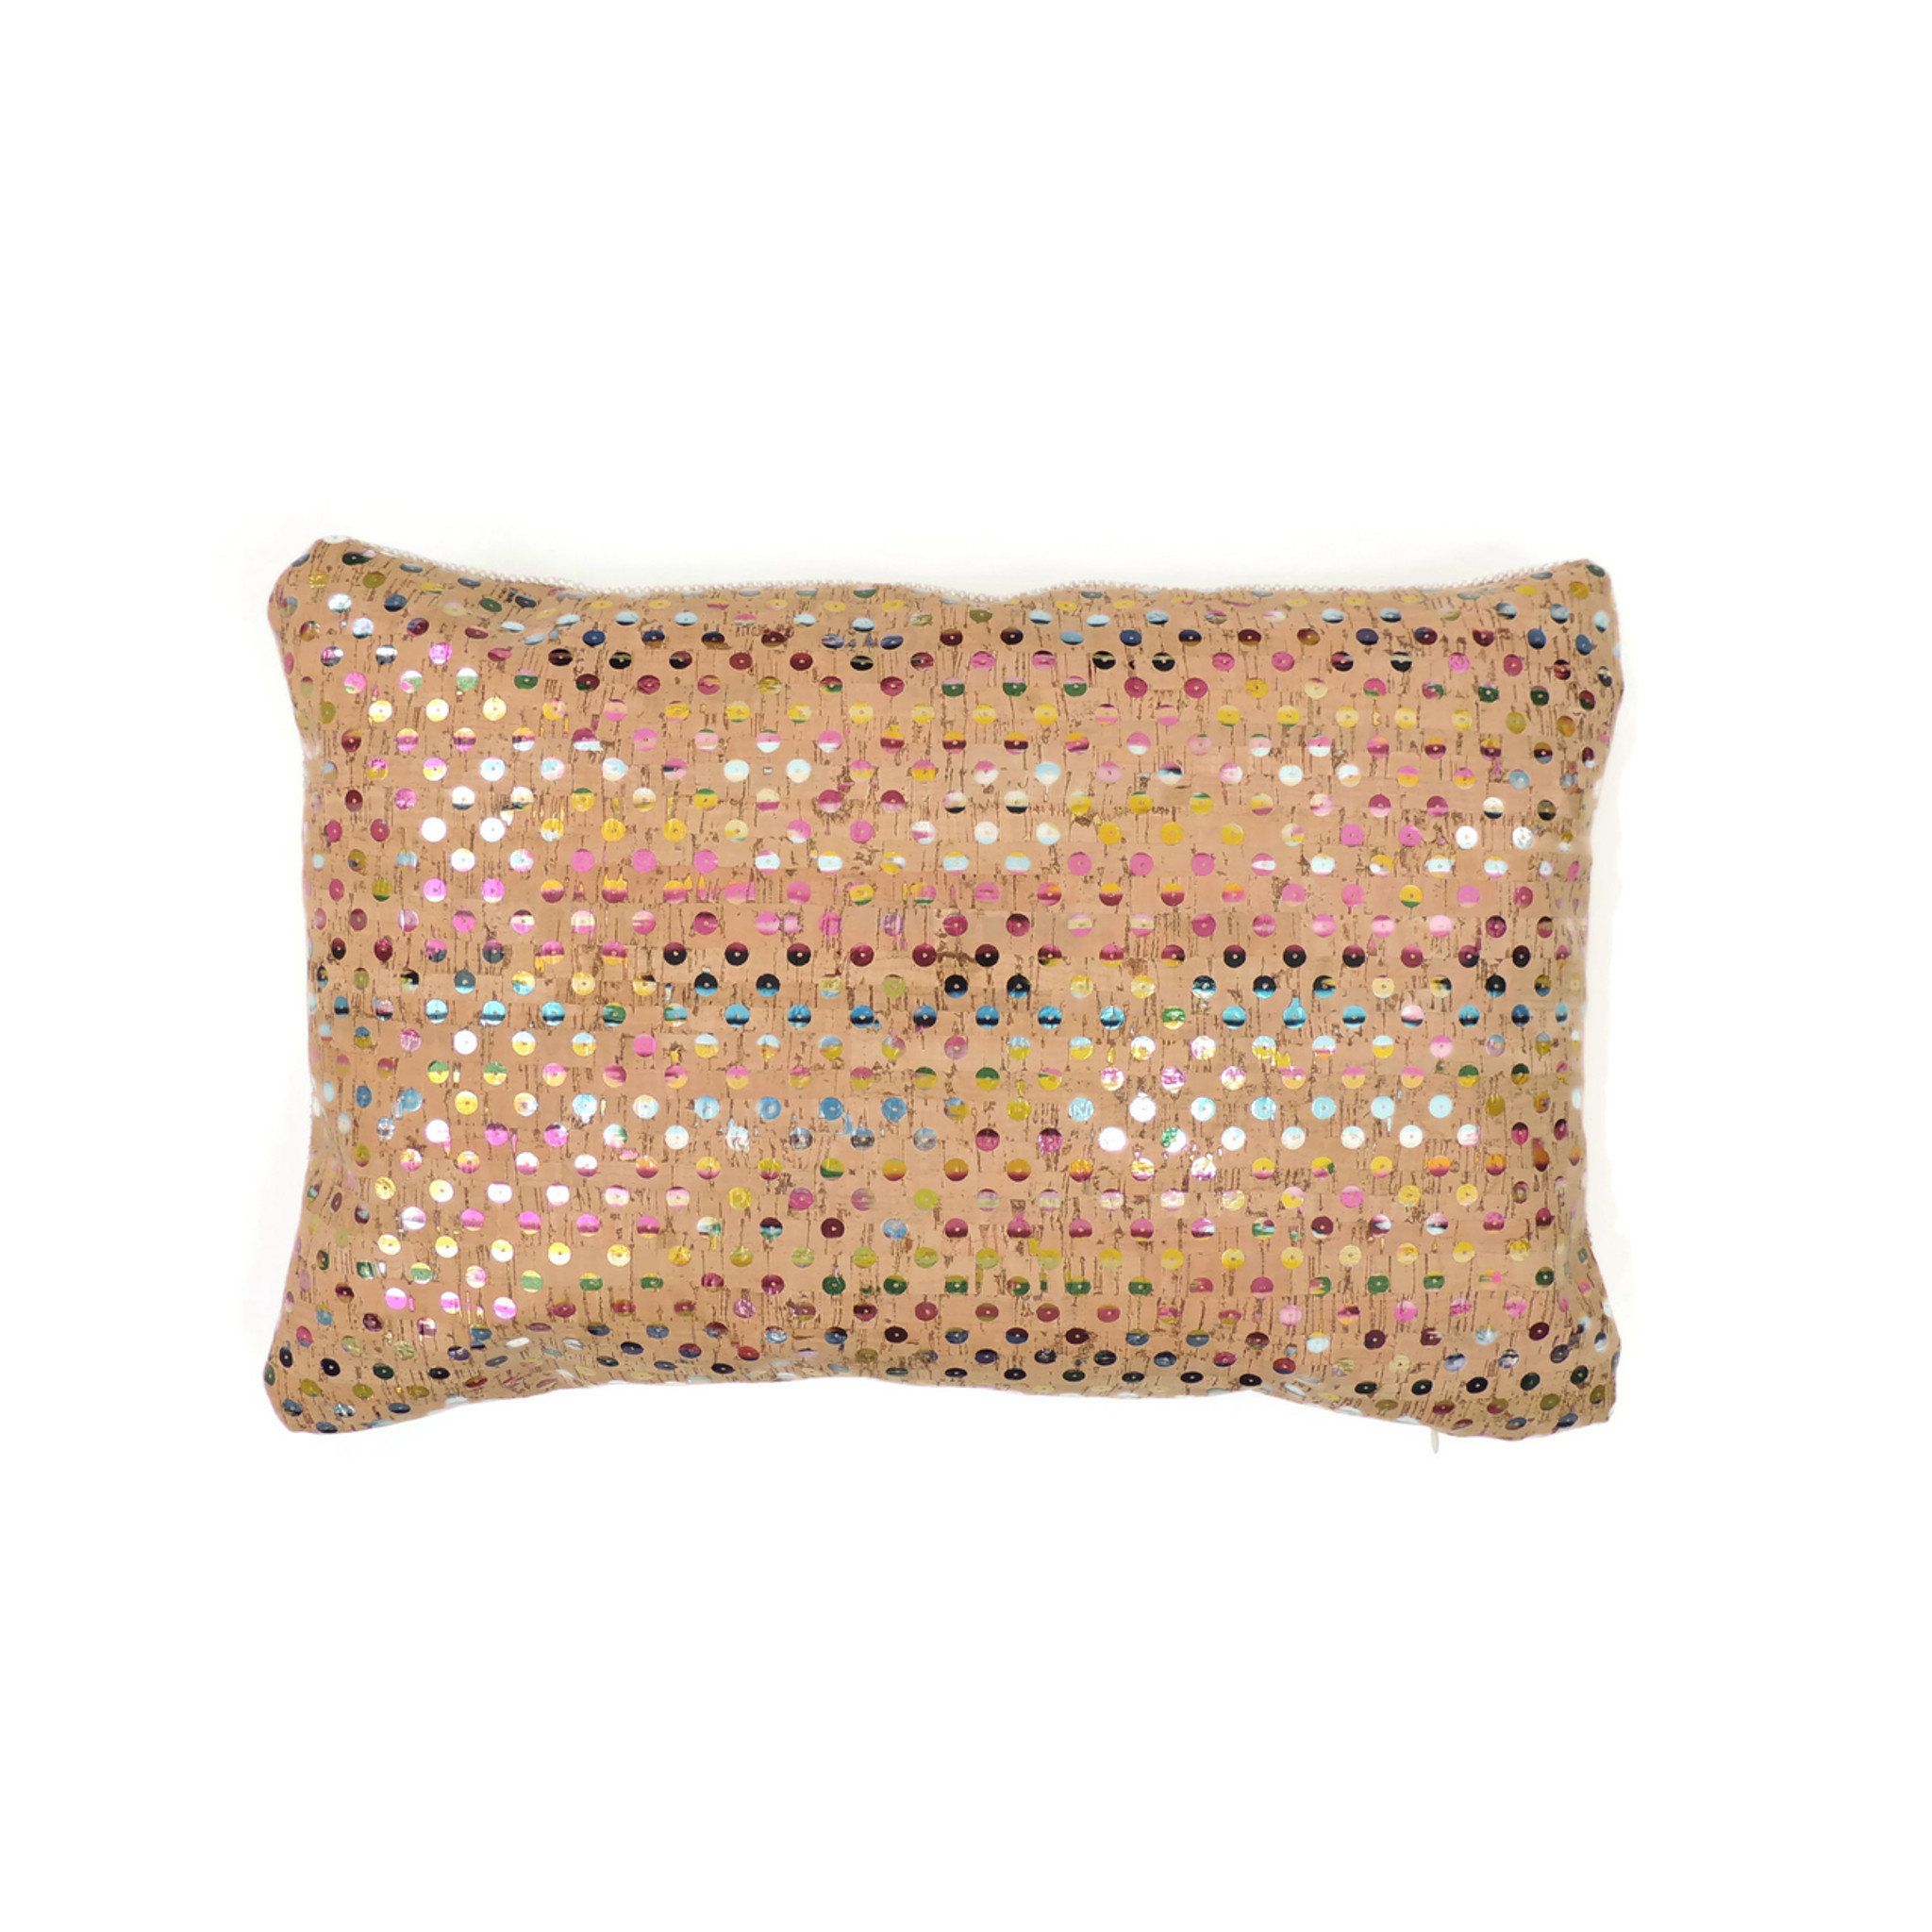 Lumbar Pillow Cover in Sequin Cork